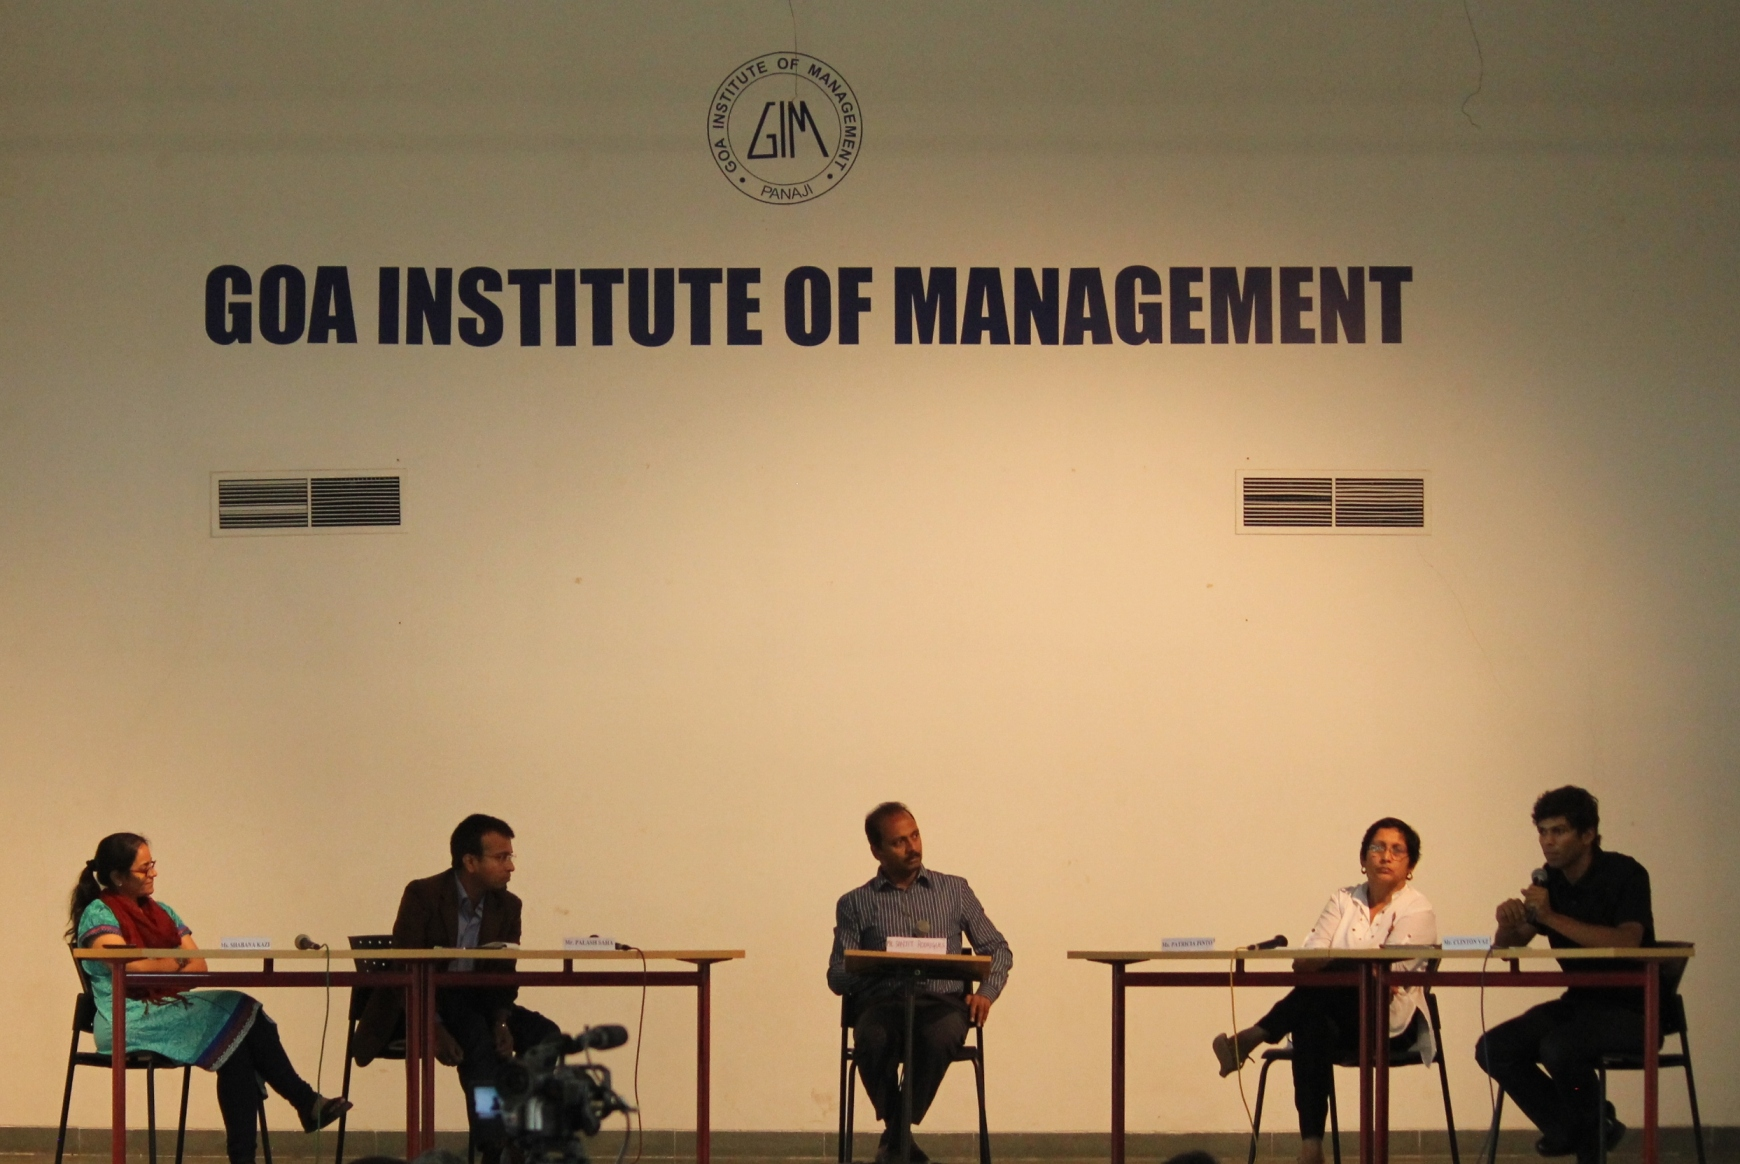 GIM organizes a conference on Solid Waste Management and Sustainable Solutions at its campus in Sanquelim